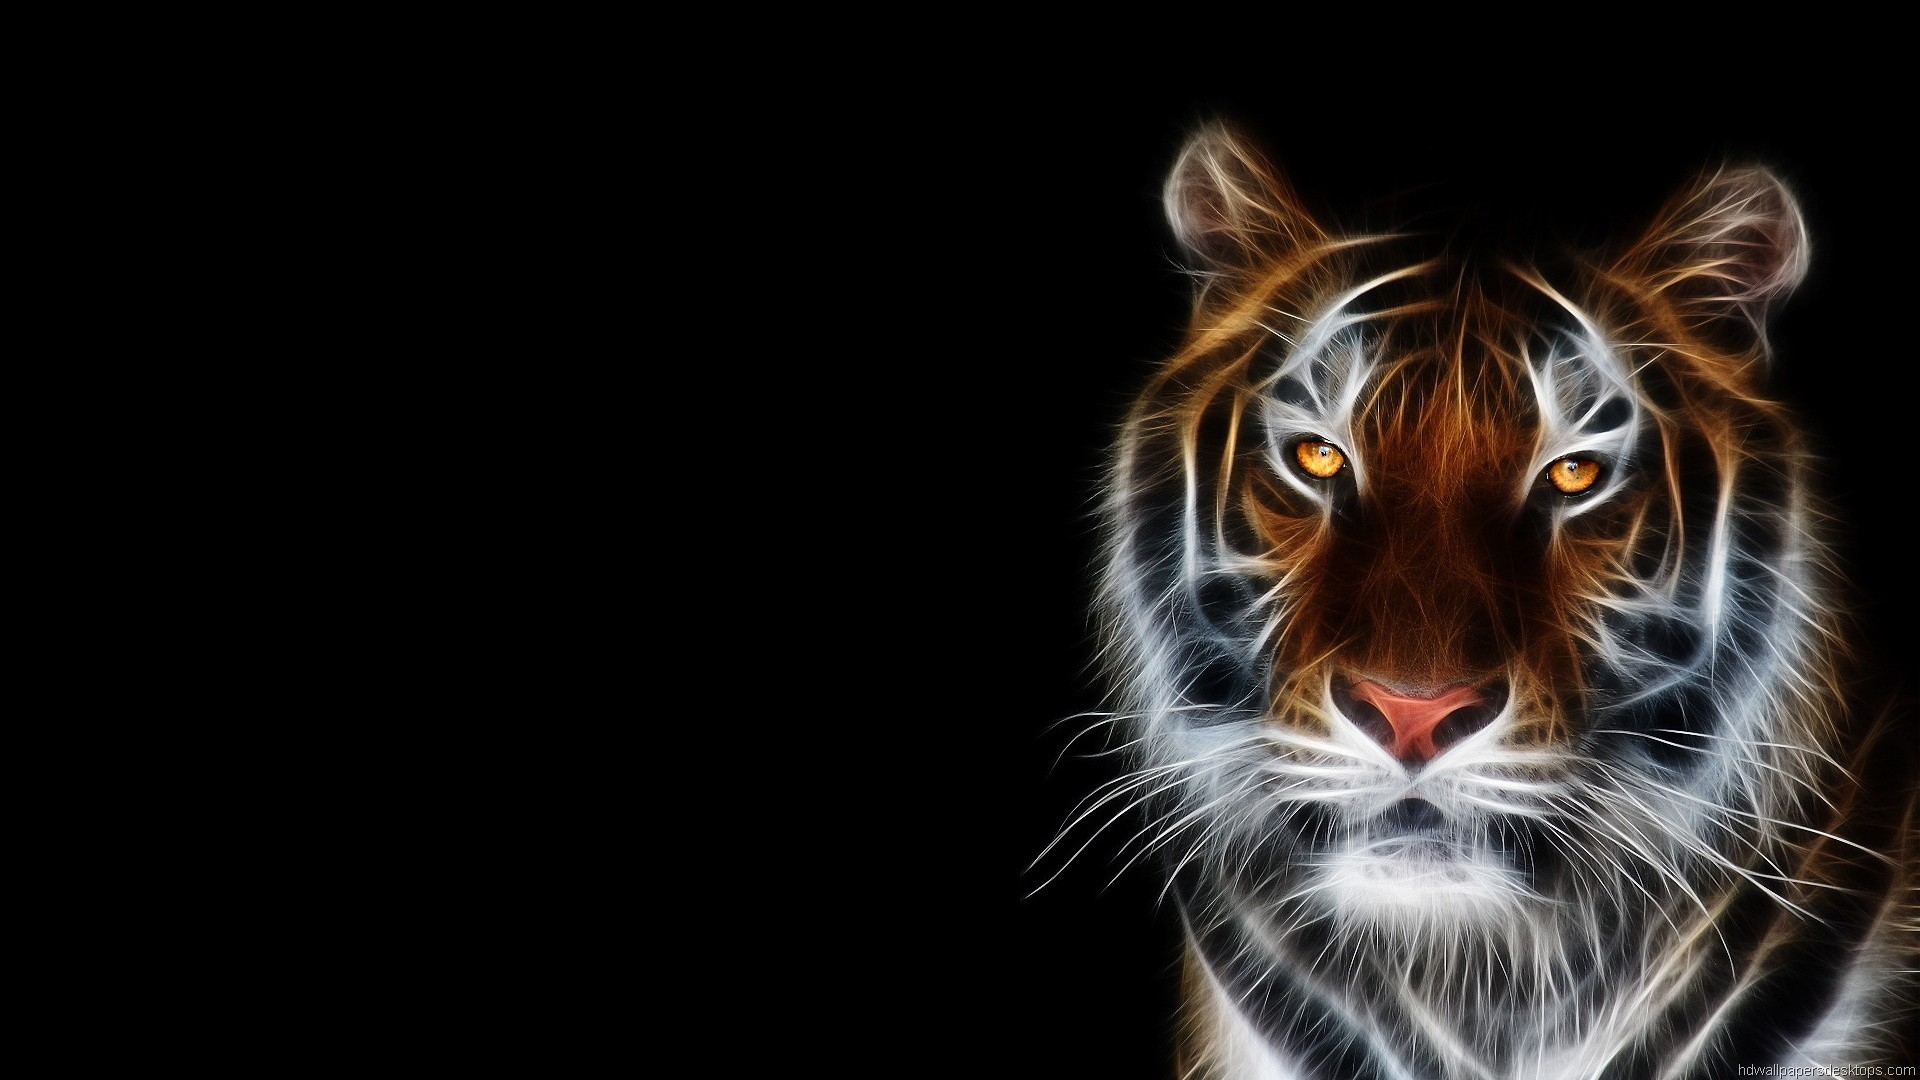 1920x1080 Animals Wallpapers, HD, Widescreen, Desktop Backgrounds,